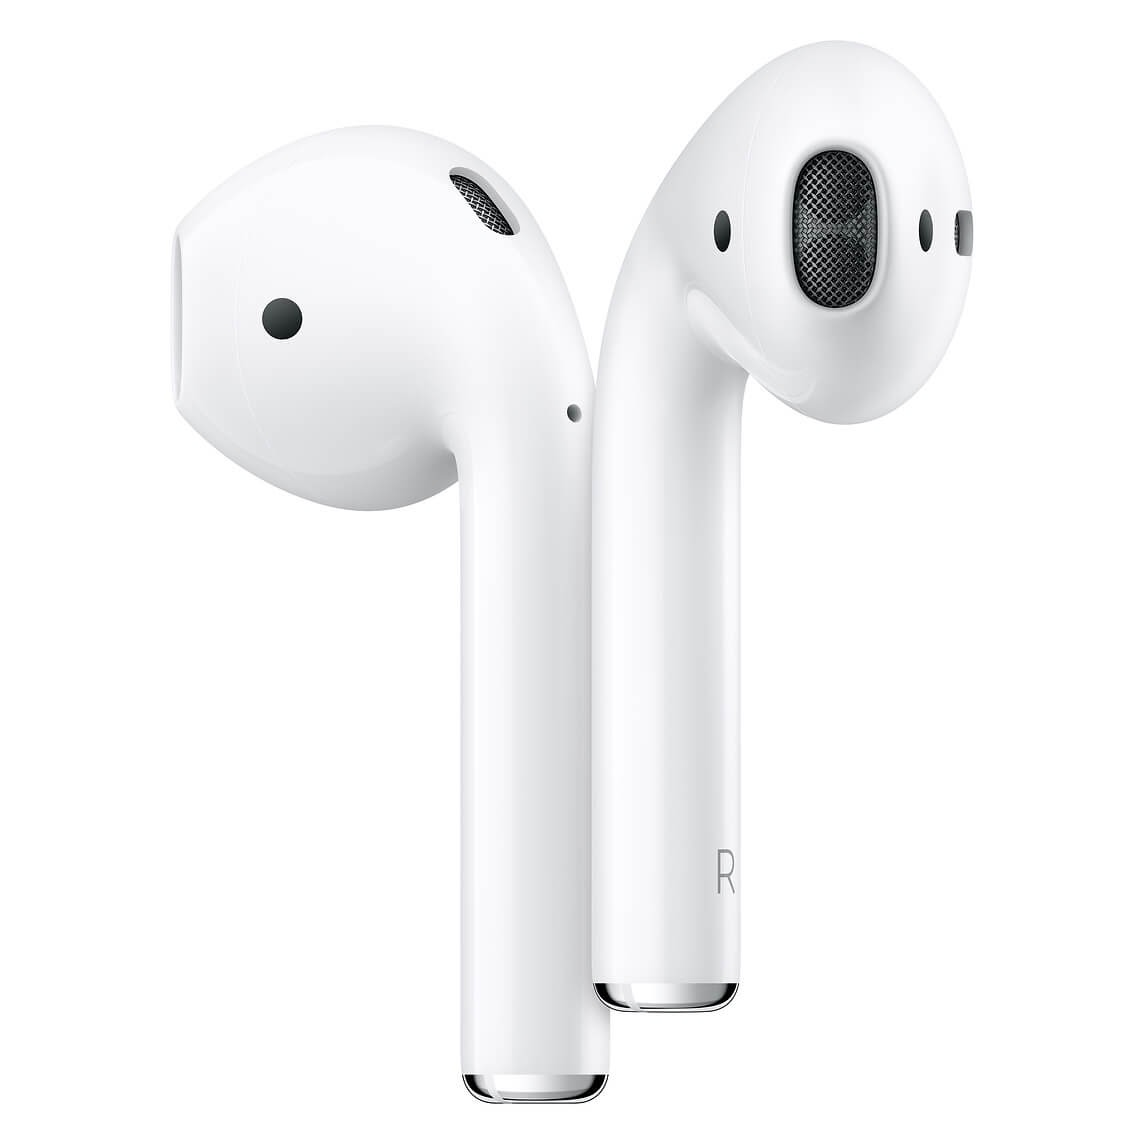 Airpods Airport Electronic Store